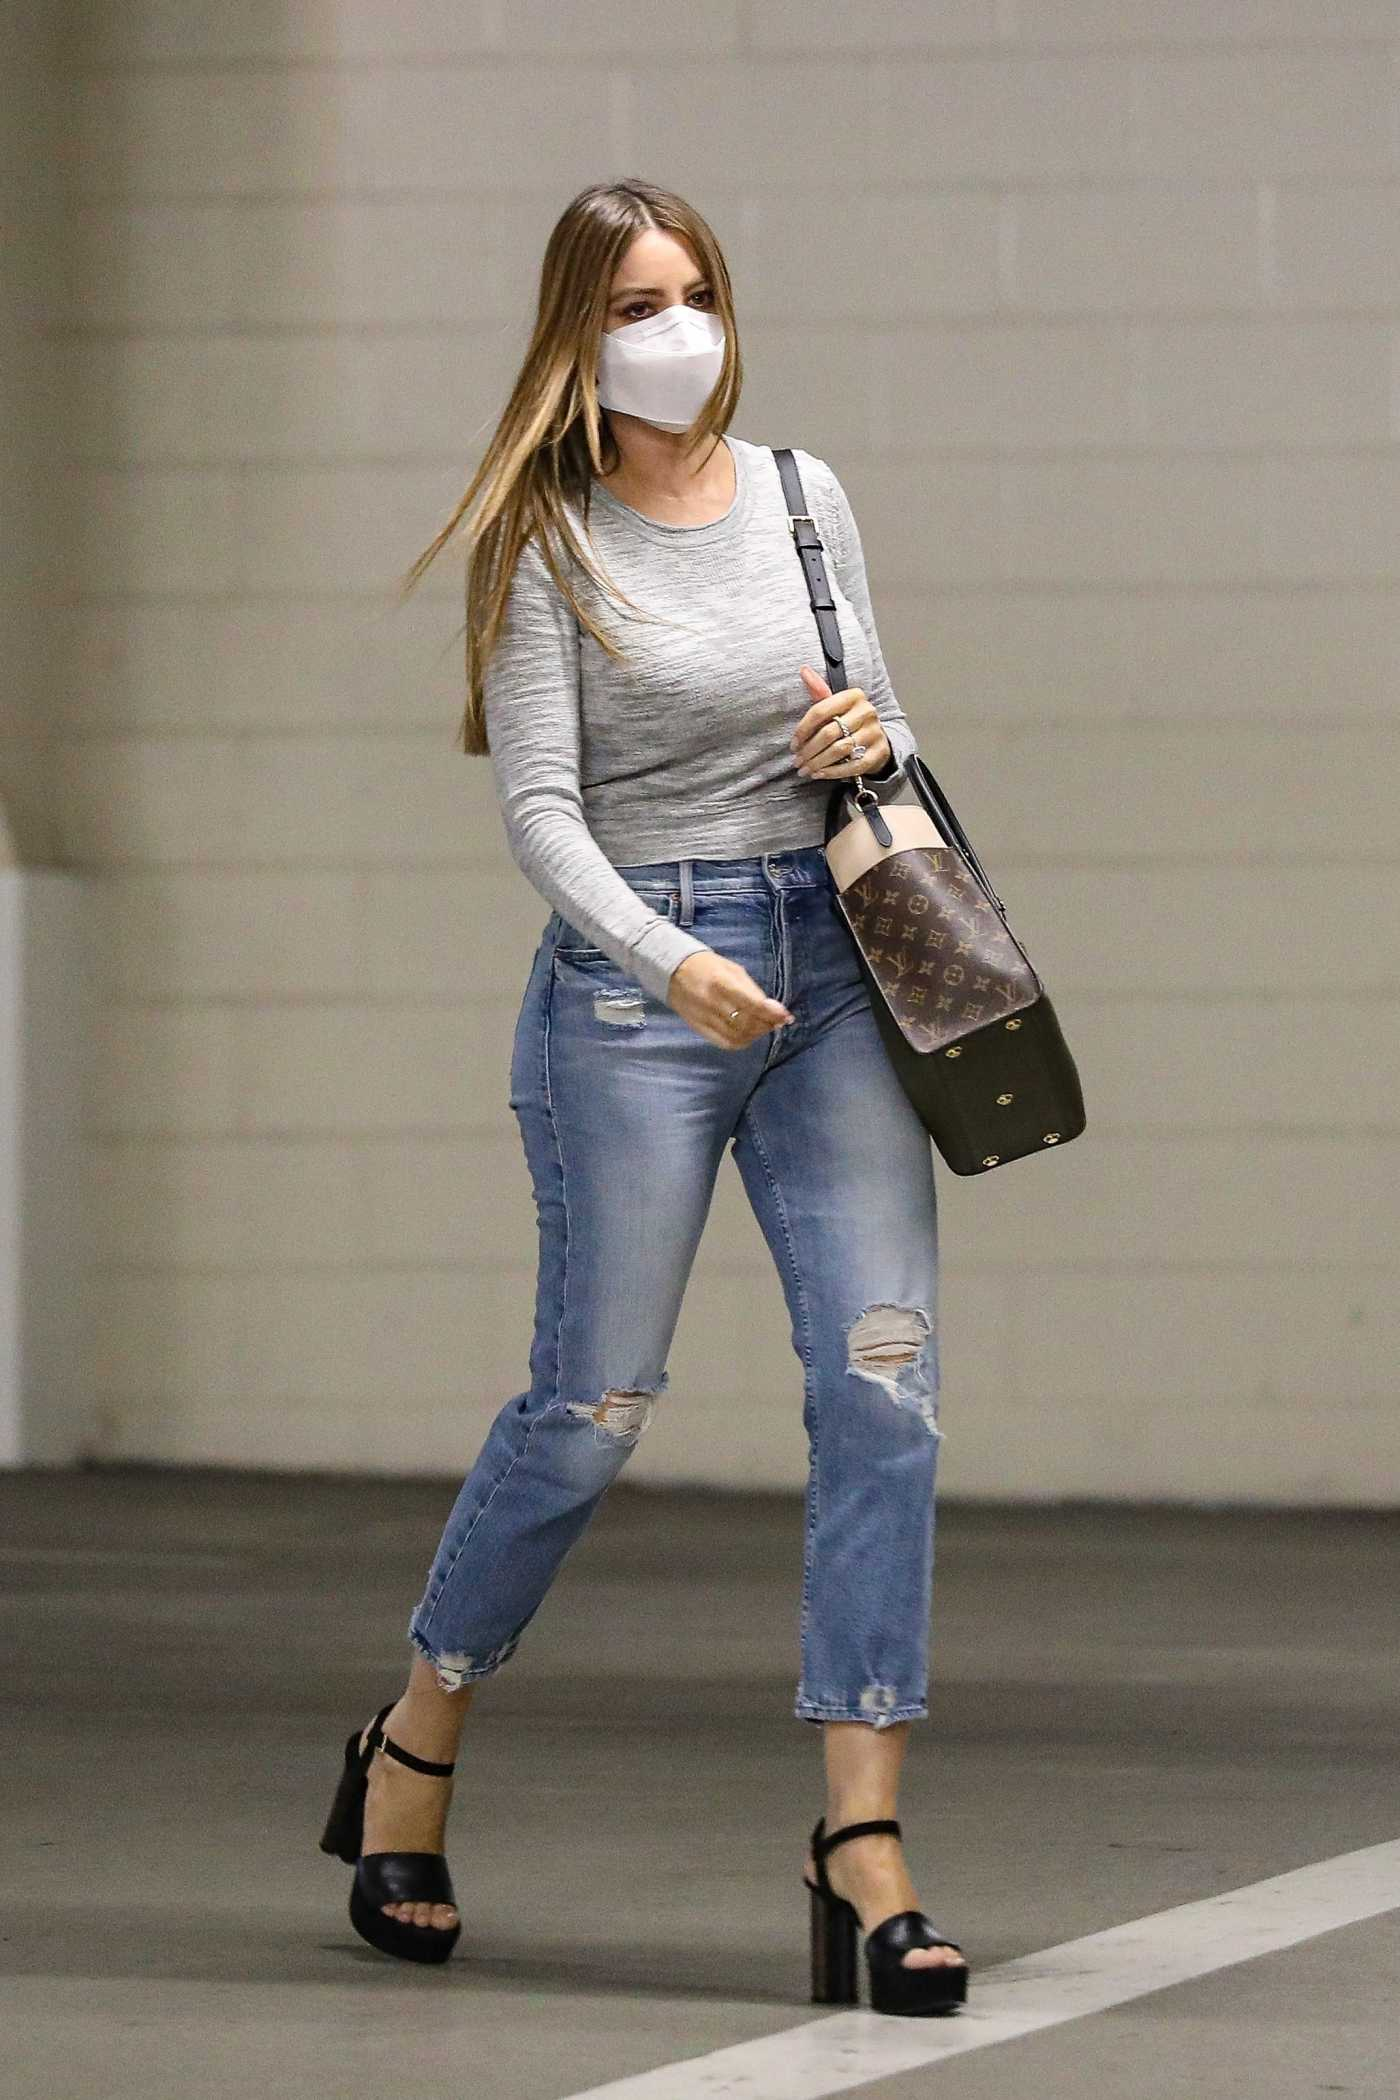 Sofia Vergara in a Protective Mask Arrives at a Business Meeting in Beverly Hills 10/26/2020